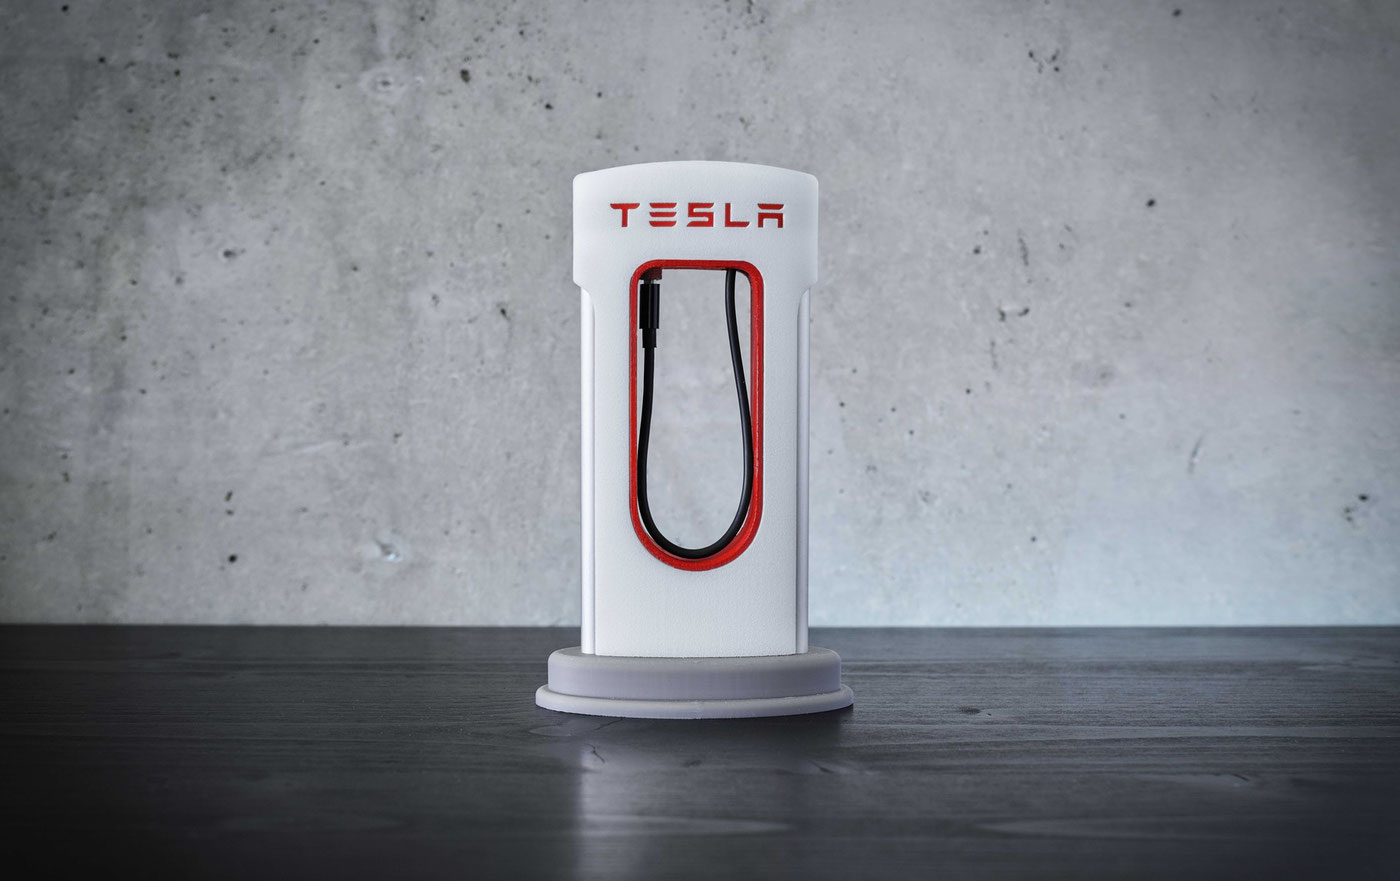 iPhone Tesla Supercharger